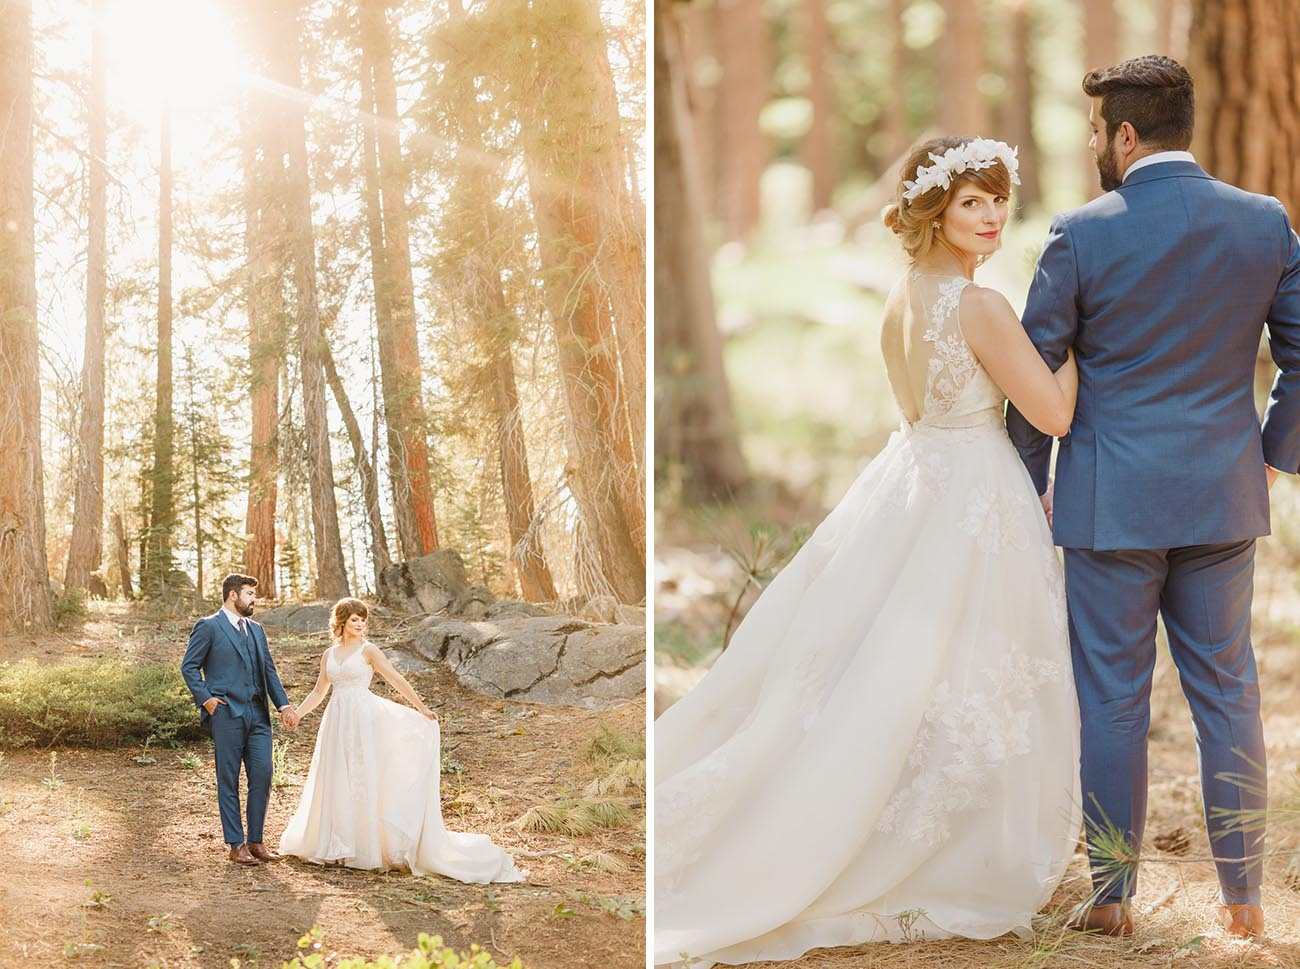 Ethereal Yosemite Day After Wedding Portraits